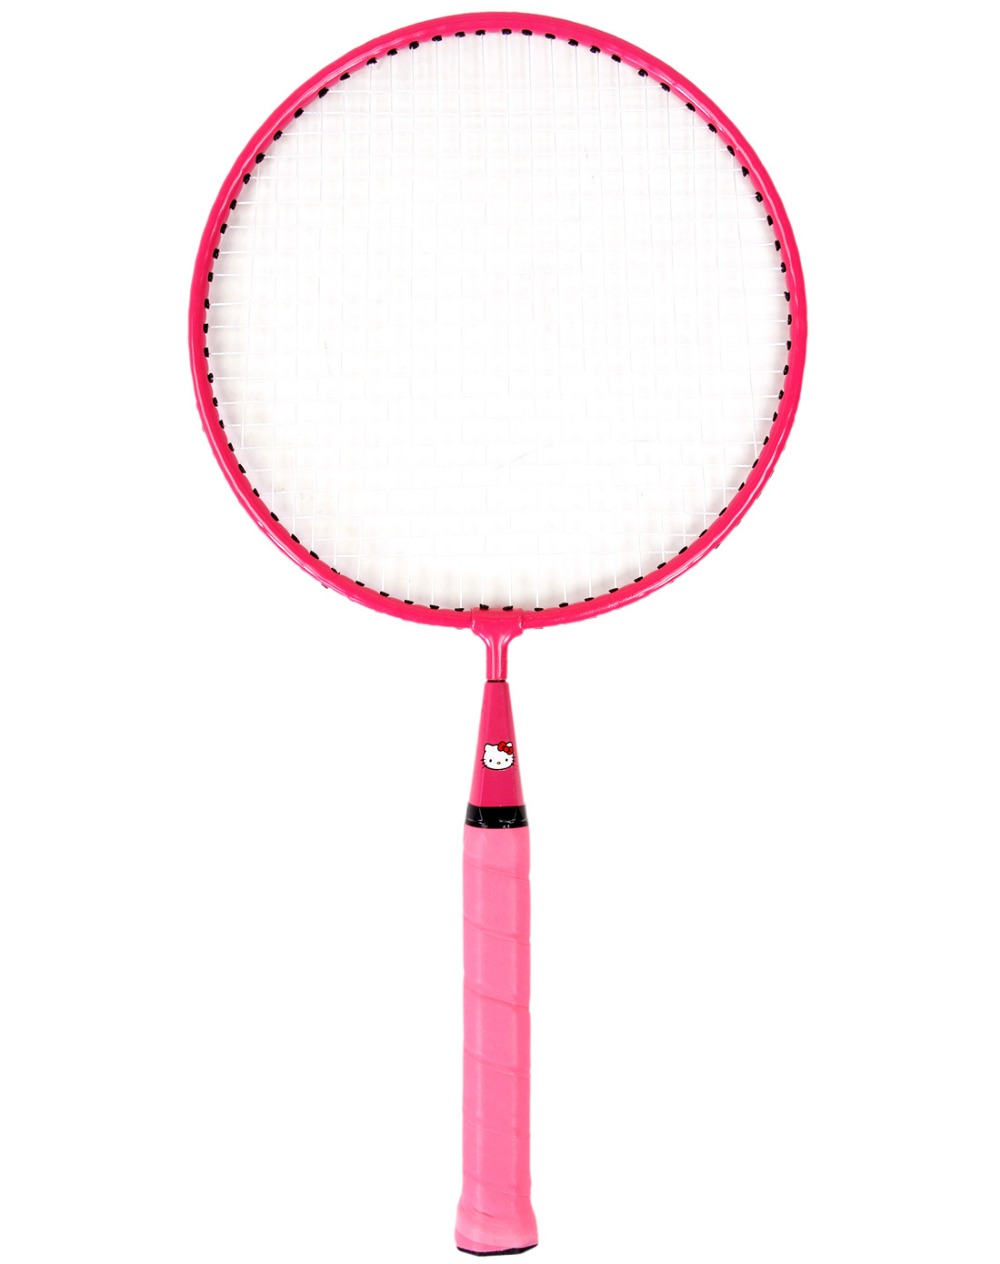 HELLO KITTY Badminton Rackets Sports cheap Kids Cartoon racket Set Training children 44cm fit 3-12 years old Badminton Rackets (3)